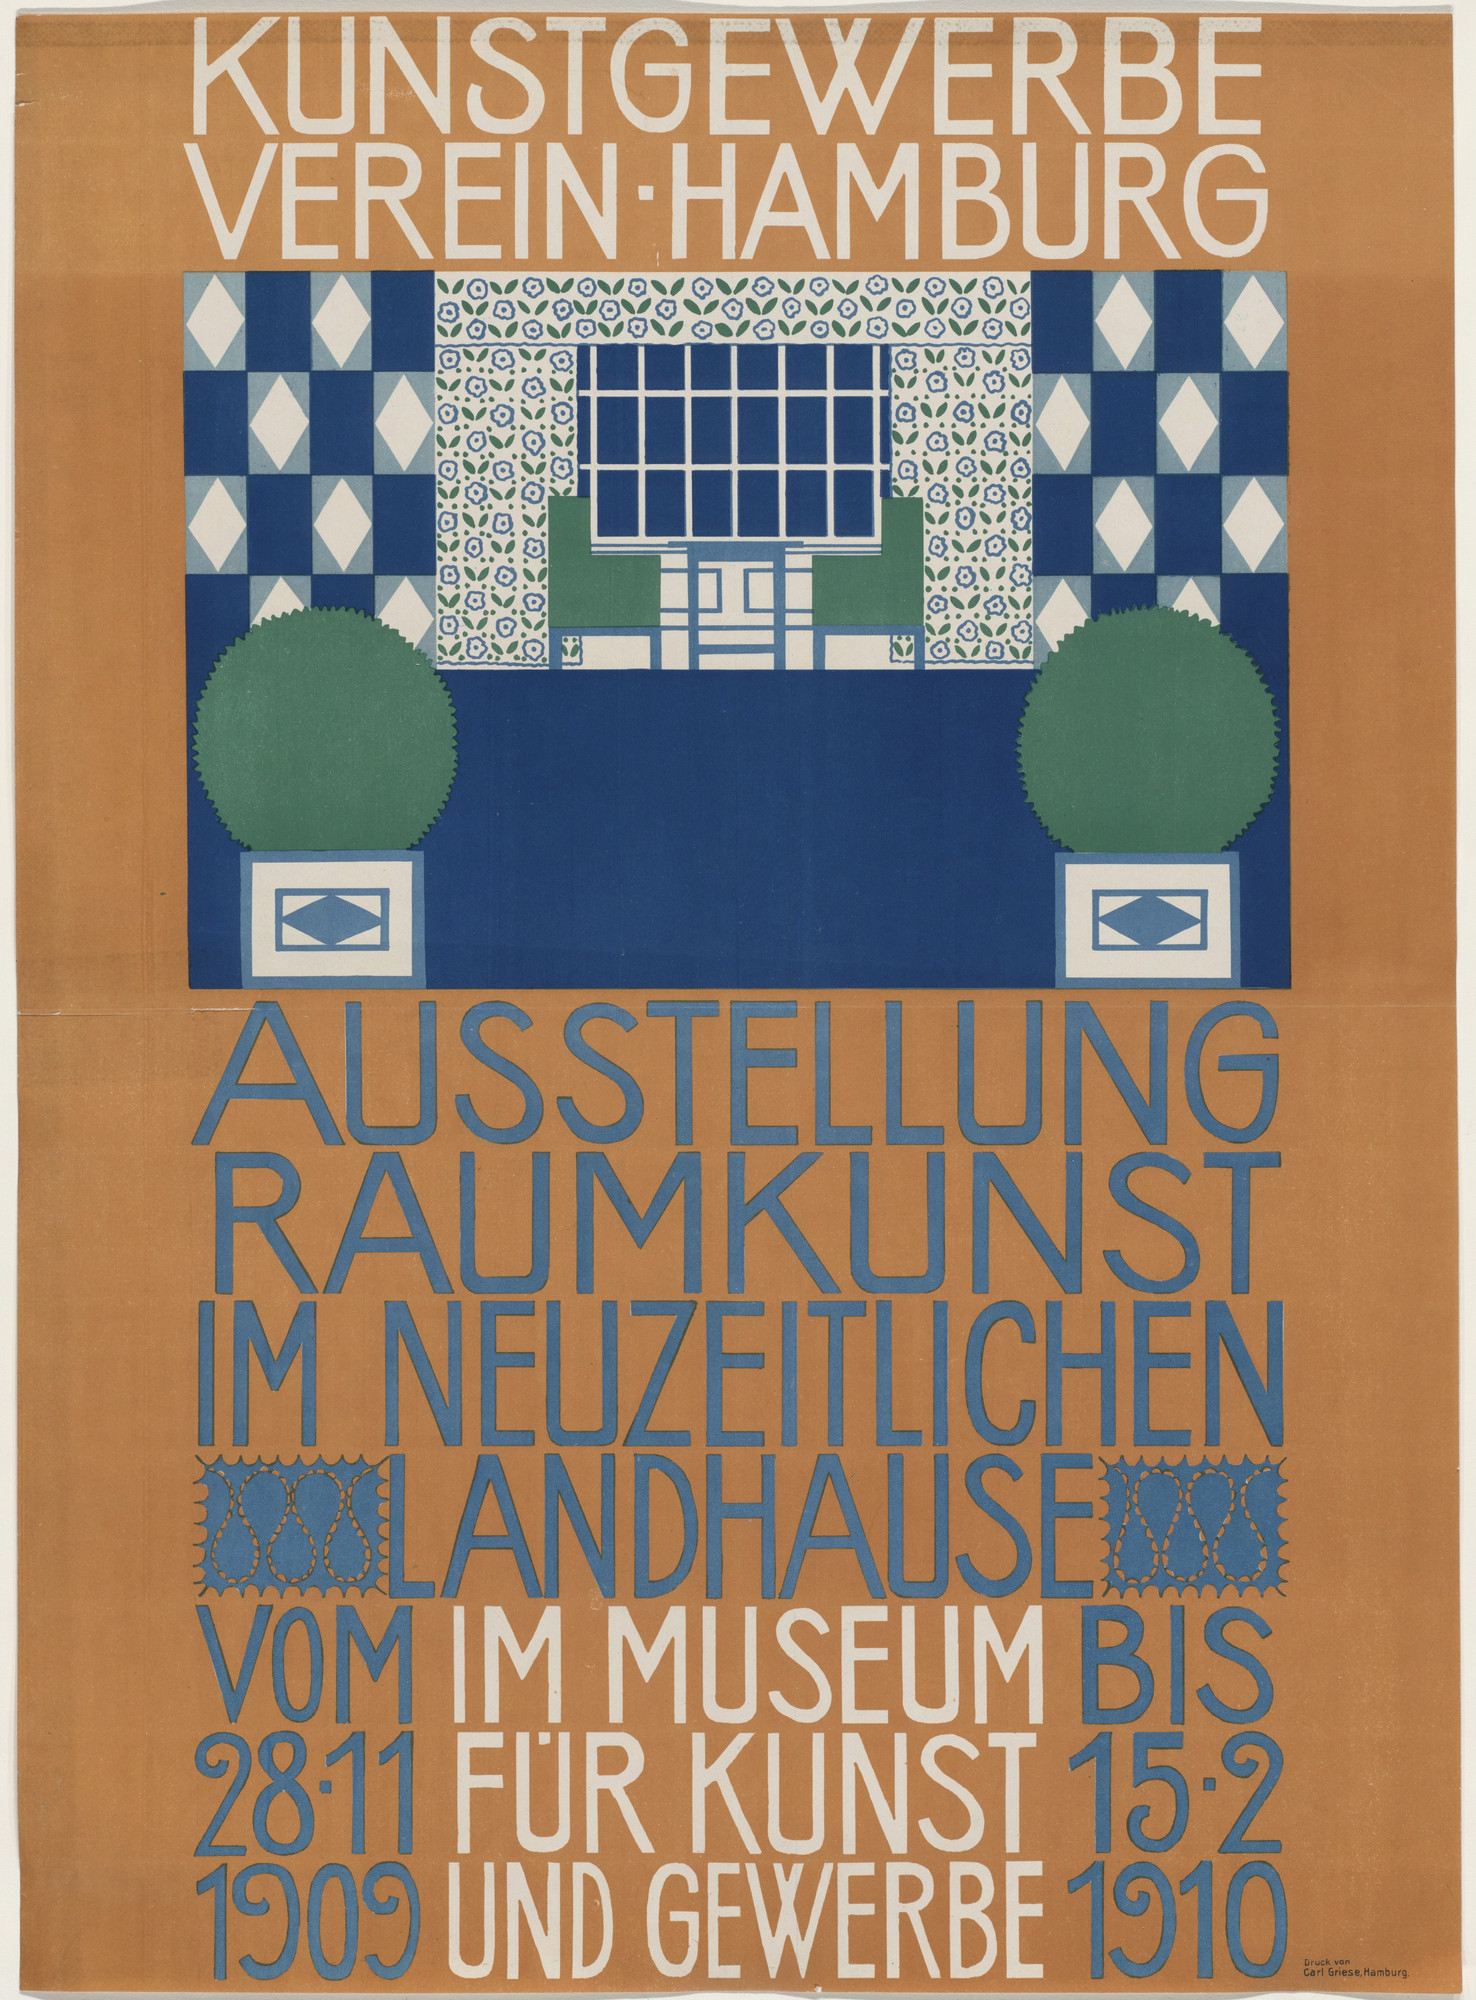 Otto Struck. Ausstellung Raumkunst im Neuzeitlichen Landhause [Exhibition of Interior Decoration in Contemporary Houses]. 1909